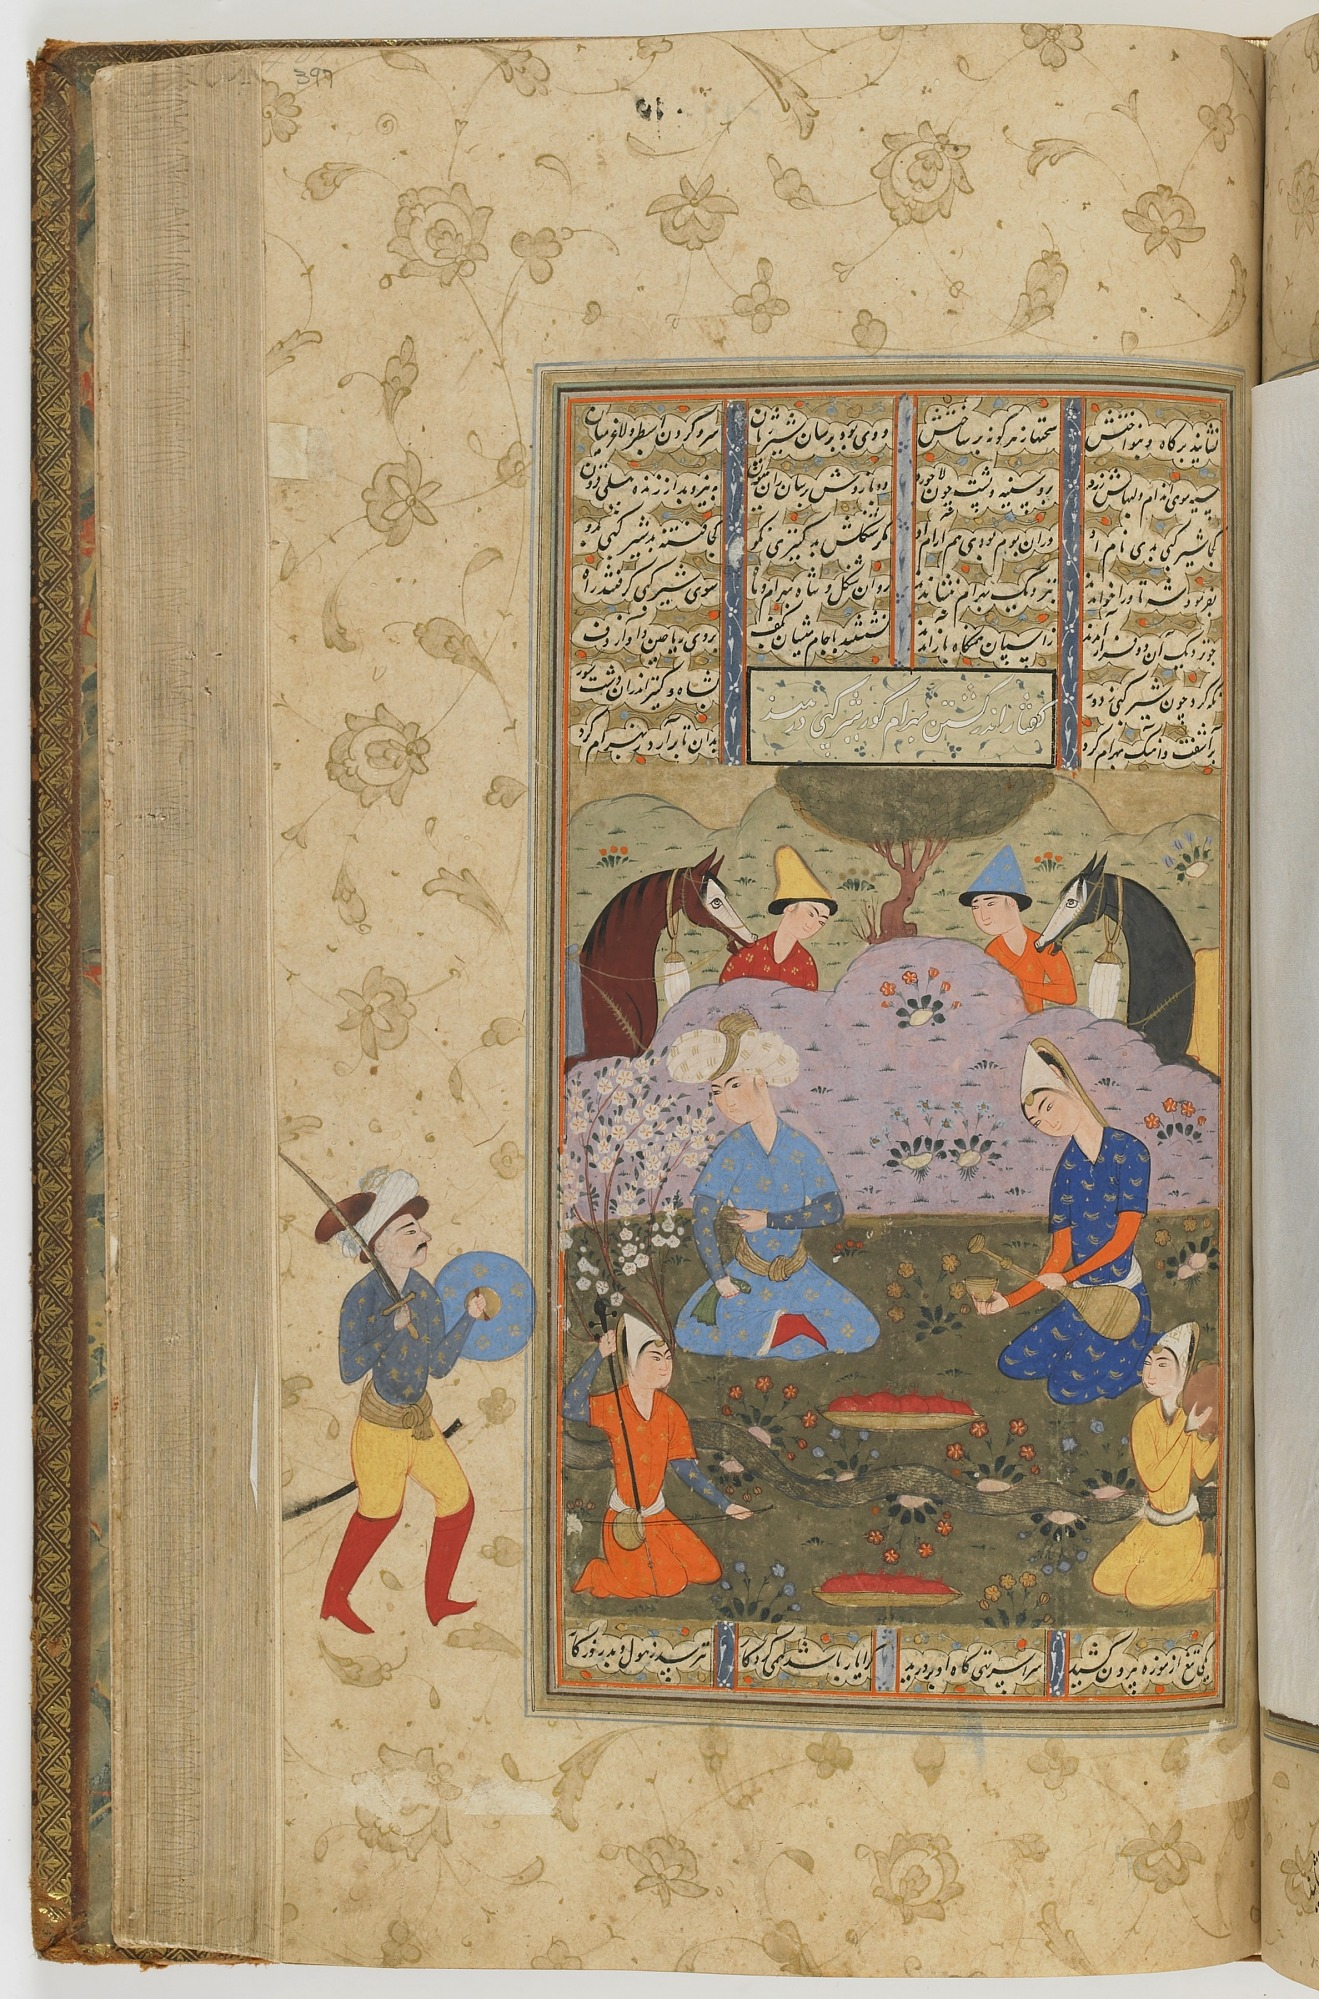 folio 397 recto: The Shahnama (Book of kings) by Firdausi (d. 1020)